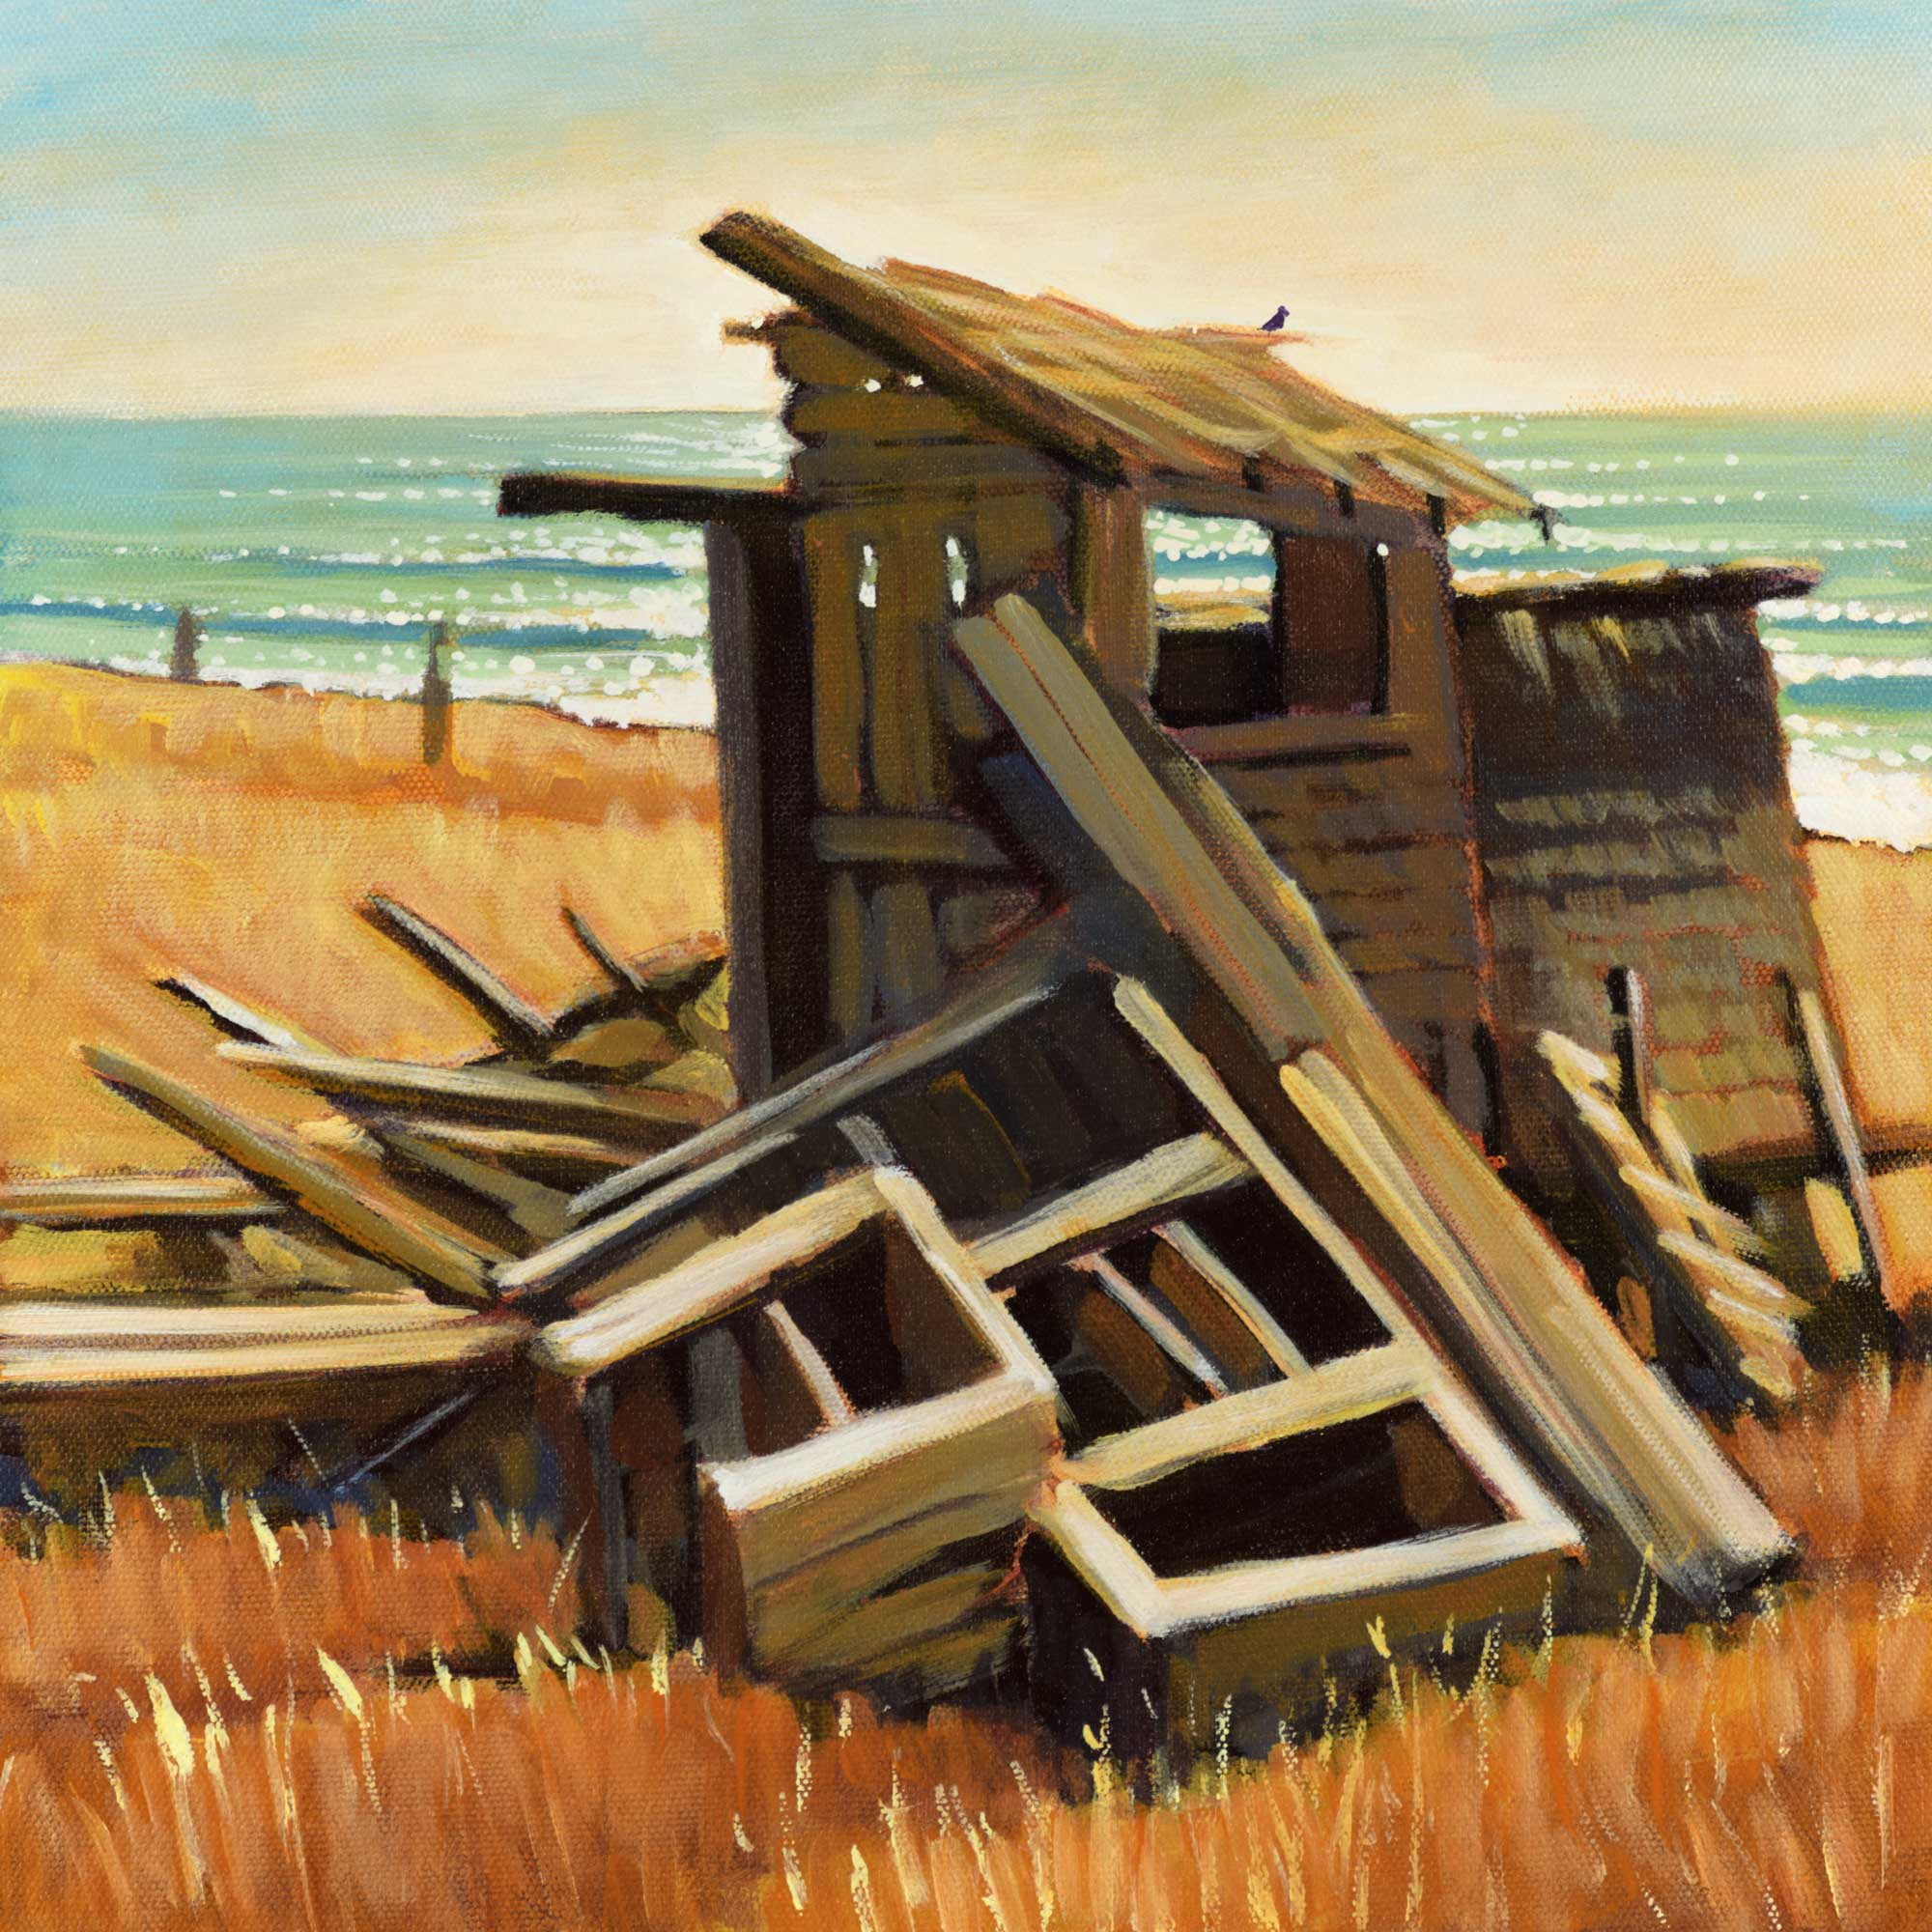 A plein air painting of a broken down hunting cabin on the Lost Coast Trail in Northern California's Humboldt County